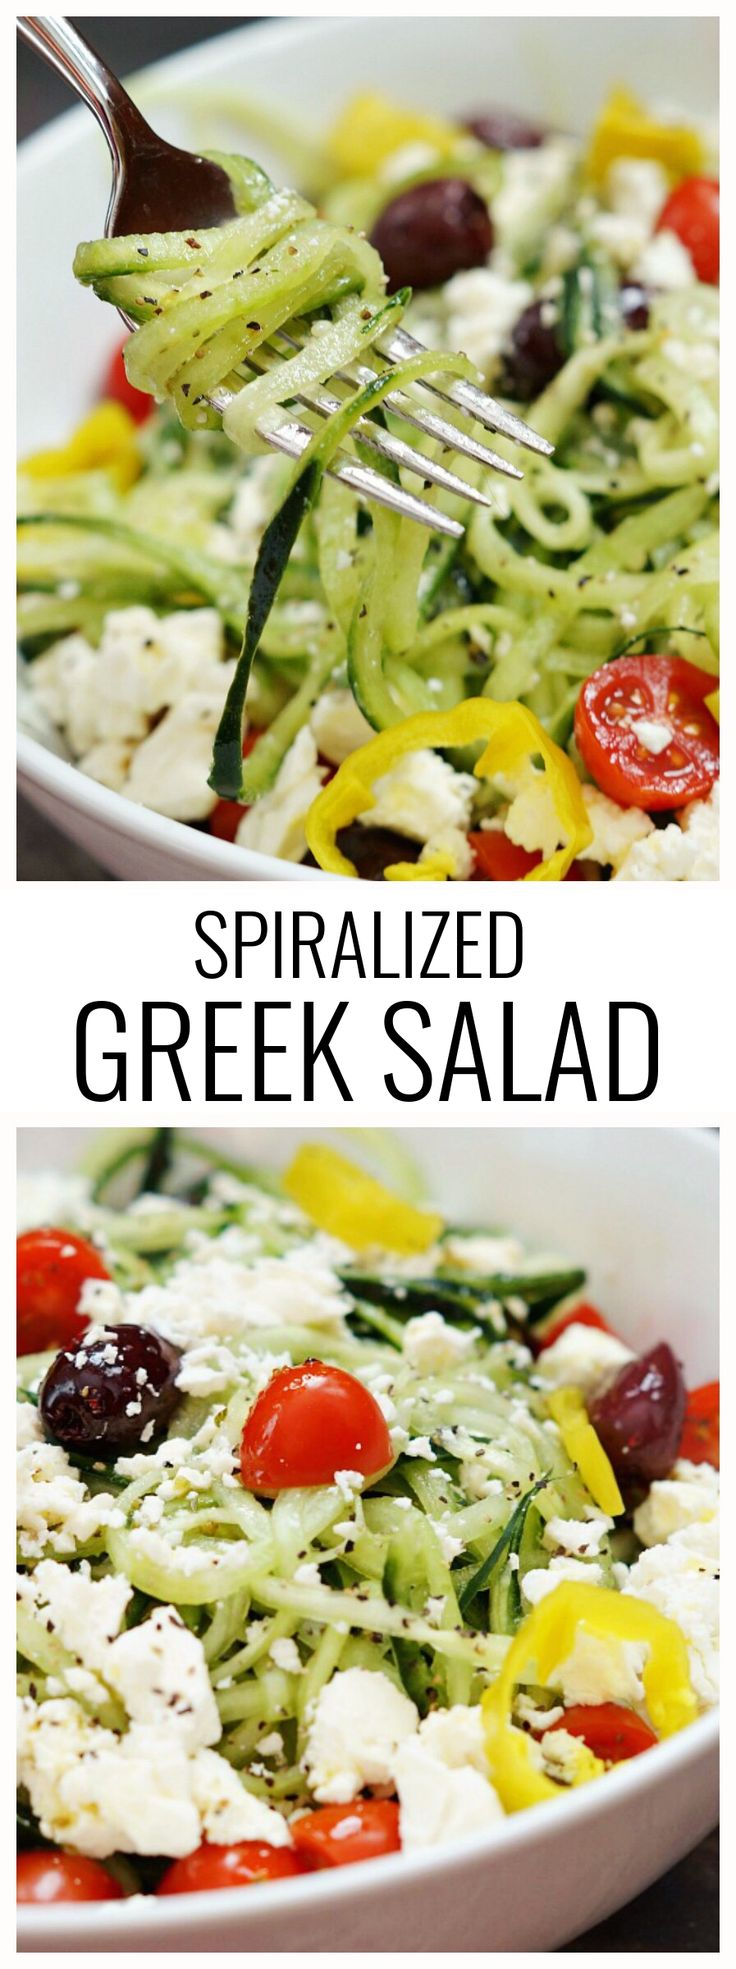 Spiralized Greek Salad